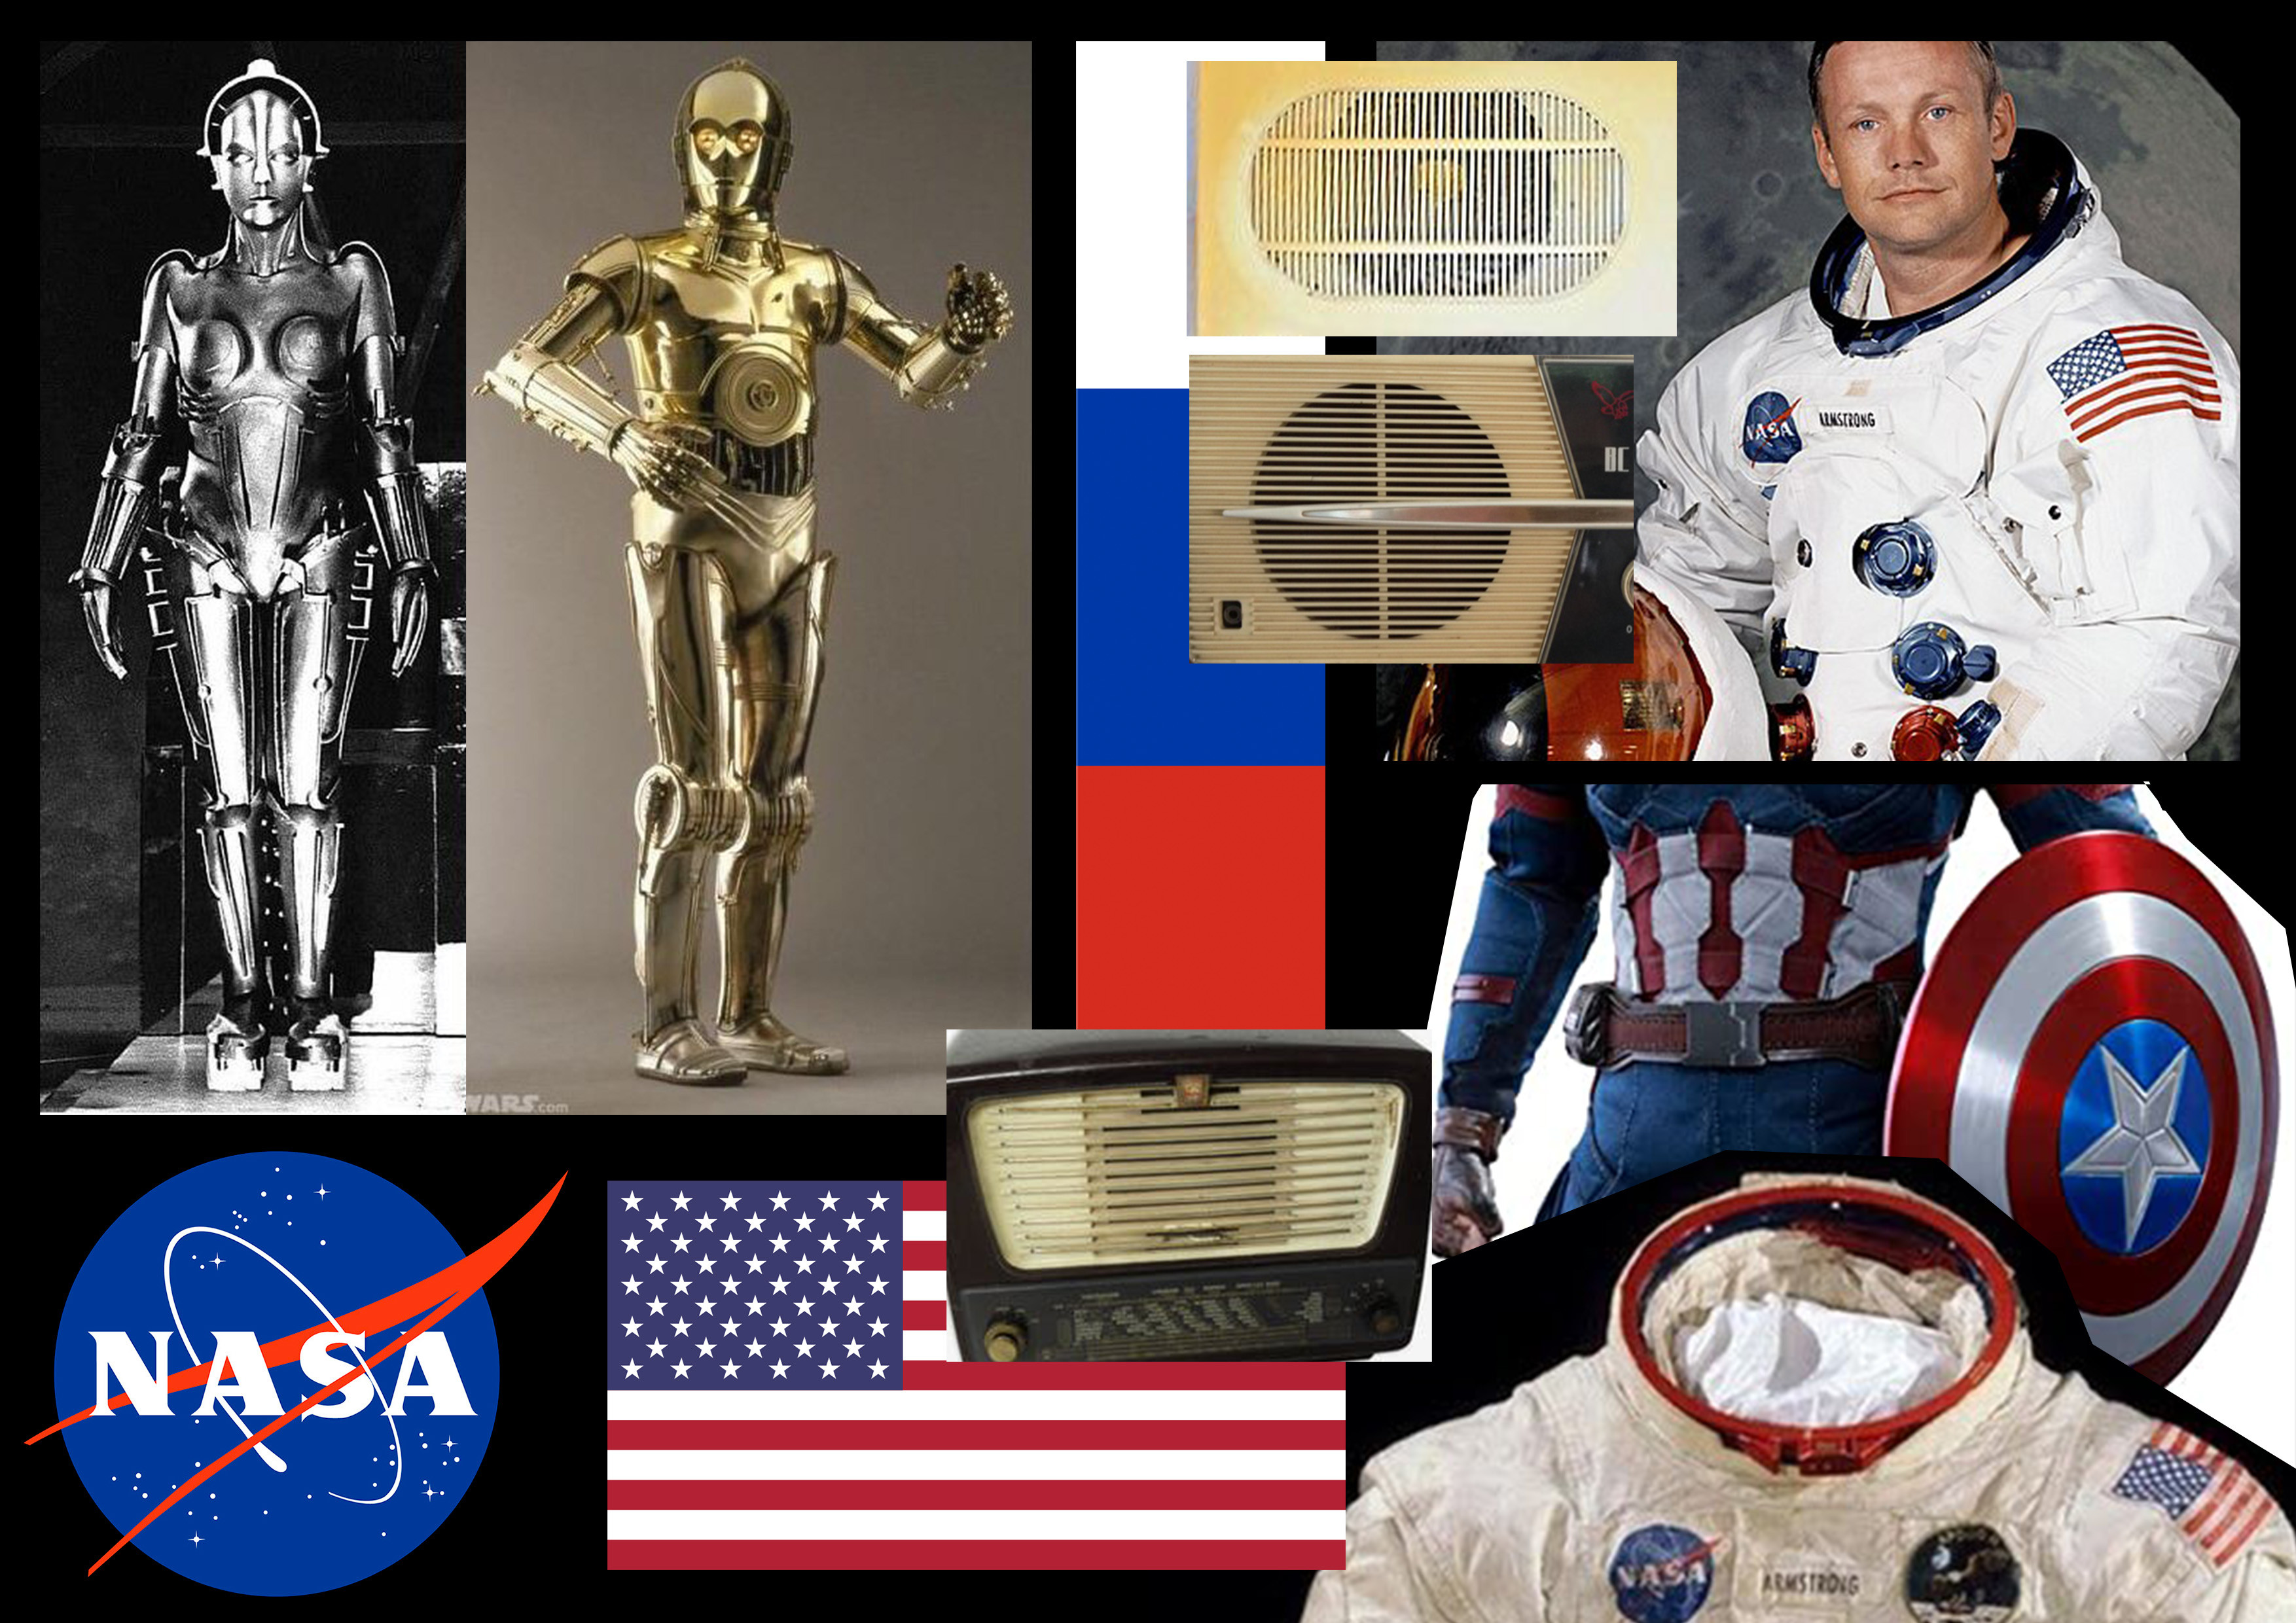 moodboard - first I did a collection of designs I wanted to avoid(marvel, metropolis and c3po) for the small details I collected images of old radios from the 60s USA and CCCP.